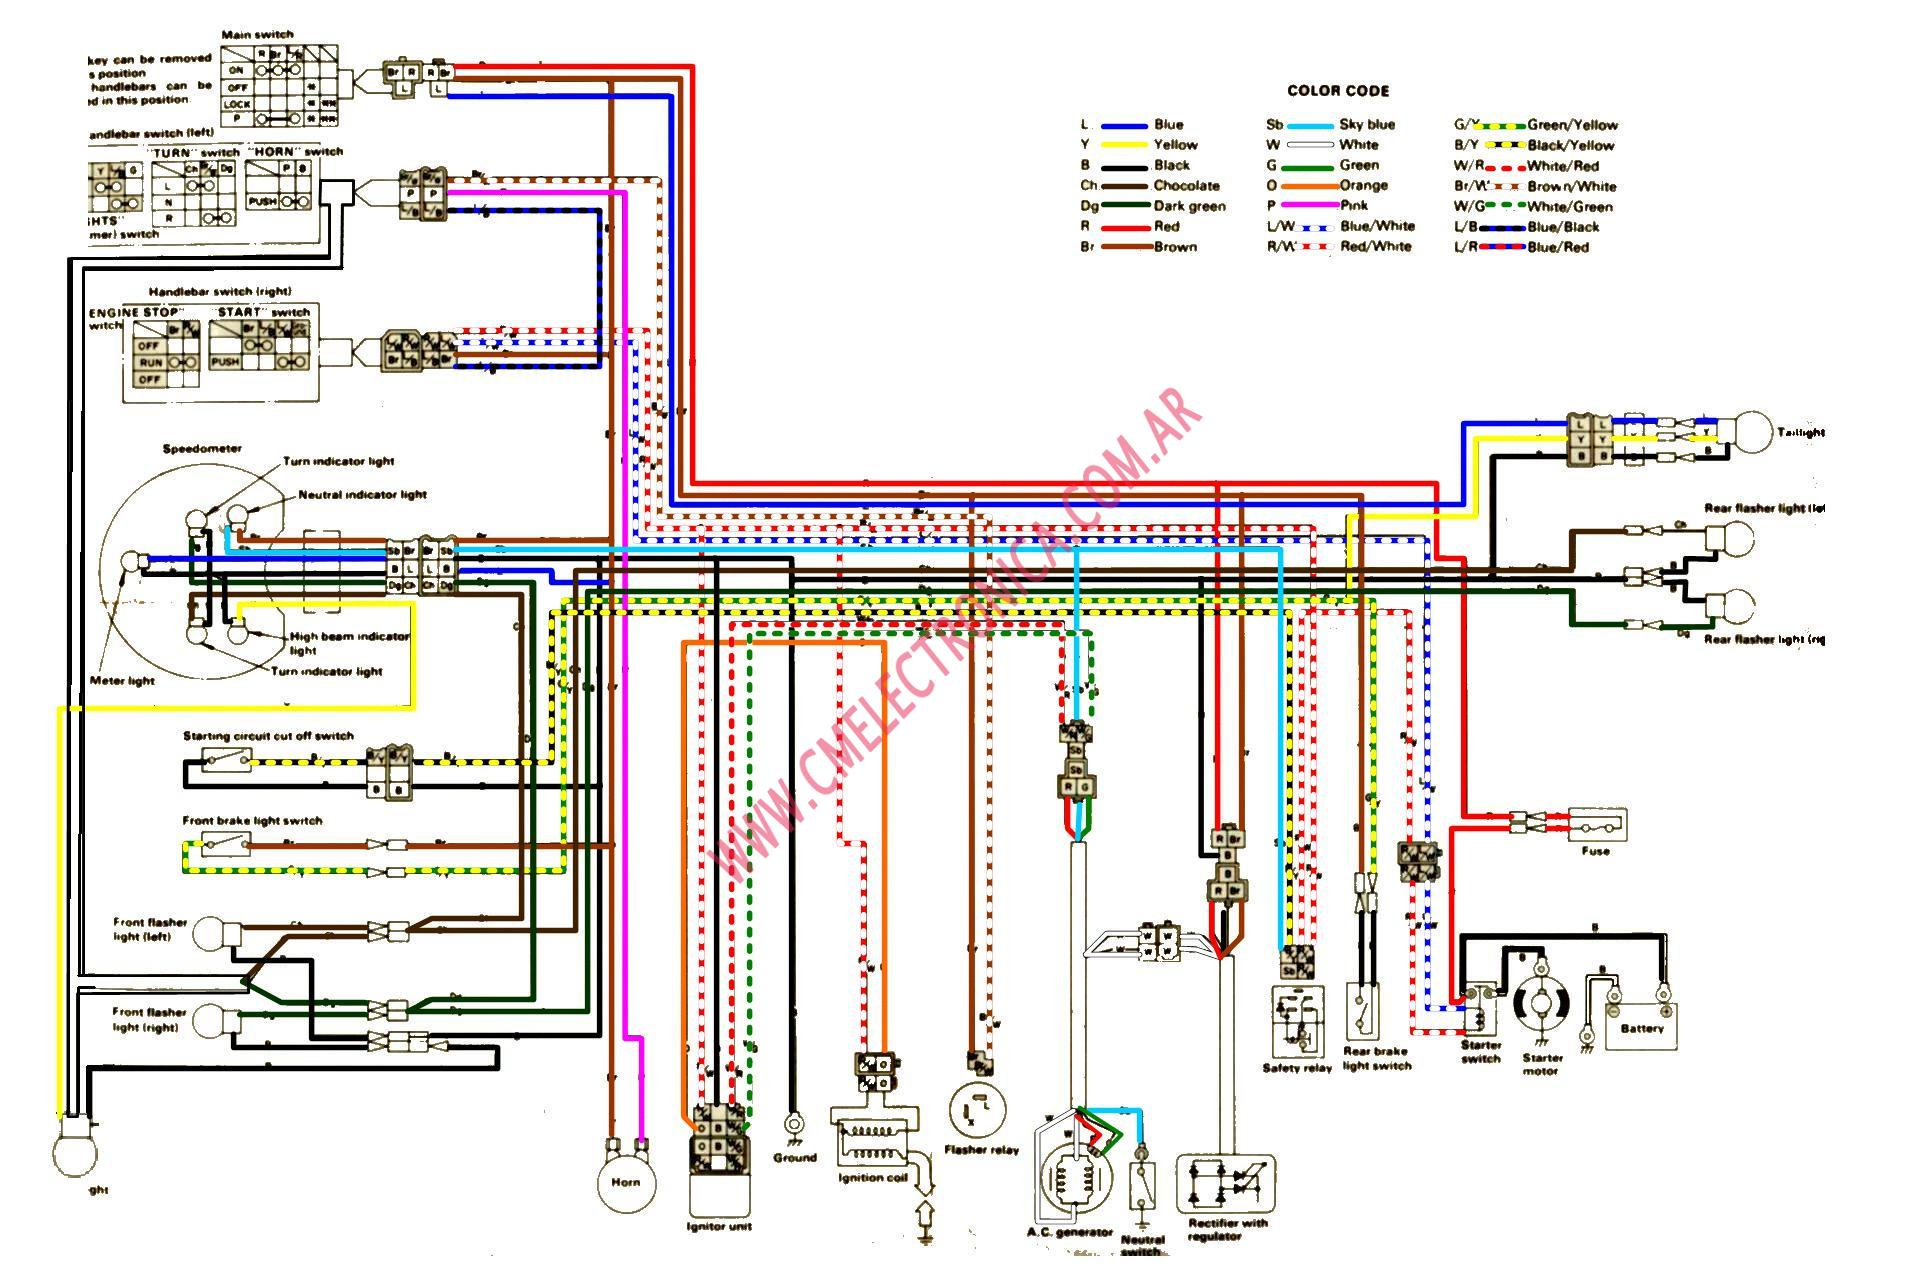 Yamaha G1 Electric Golf Cart Battery Wiring Diagram Schematics G8 Sr250 No Start On Button But Gas